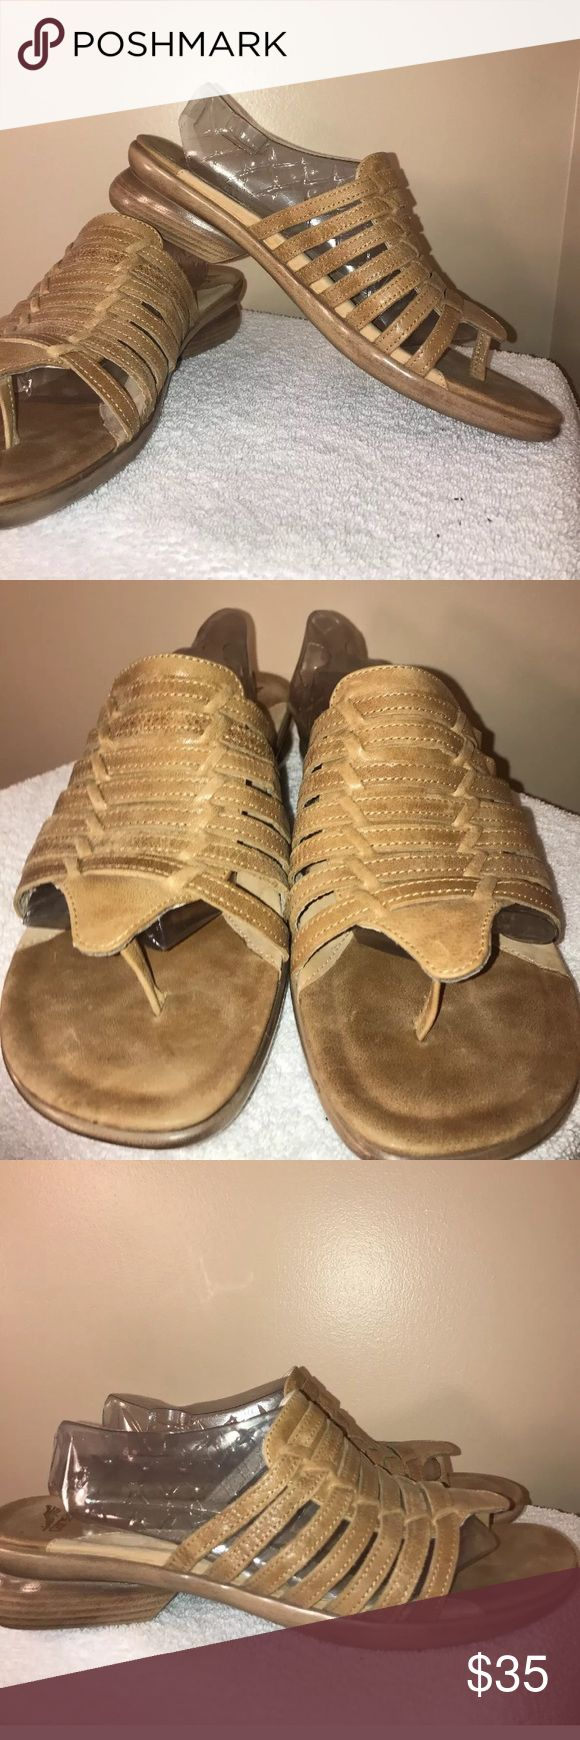 ⚡️FLASH SALE⚡️DANSKO SANDALS! Wooden heel! Sz 42 DANSKO tan leather sandals.  Excellent pre-owned condition. Please see photos.  Size 42!  Thanks for stopping by. Please follow me as I add new items regularly to my closet.   Make an offer or a bundle for additional savings. Dansko Shoes Sandals